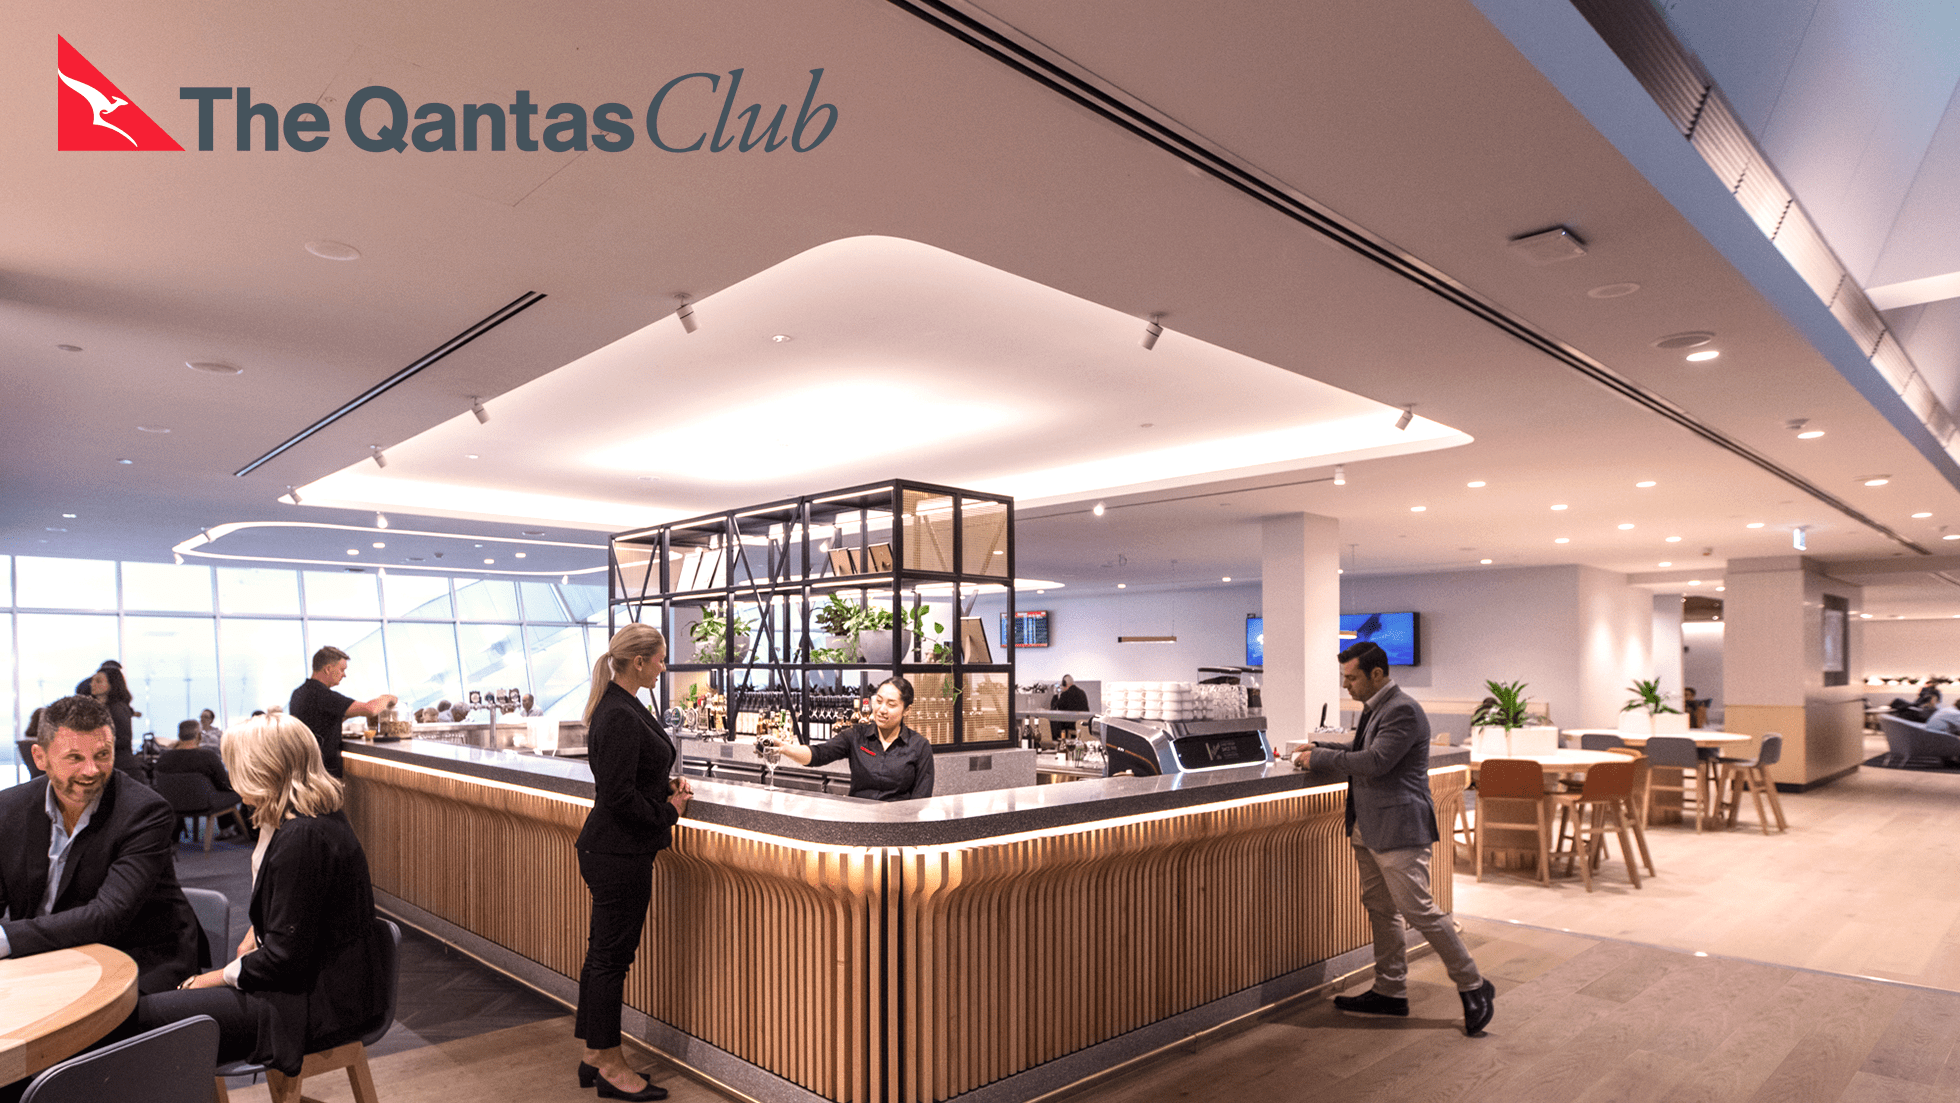 Qantas Club Membership Review - Is it worth the price of admission?